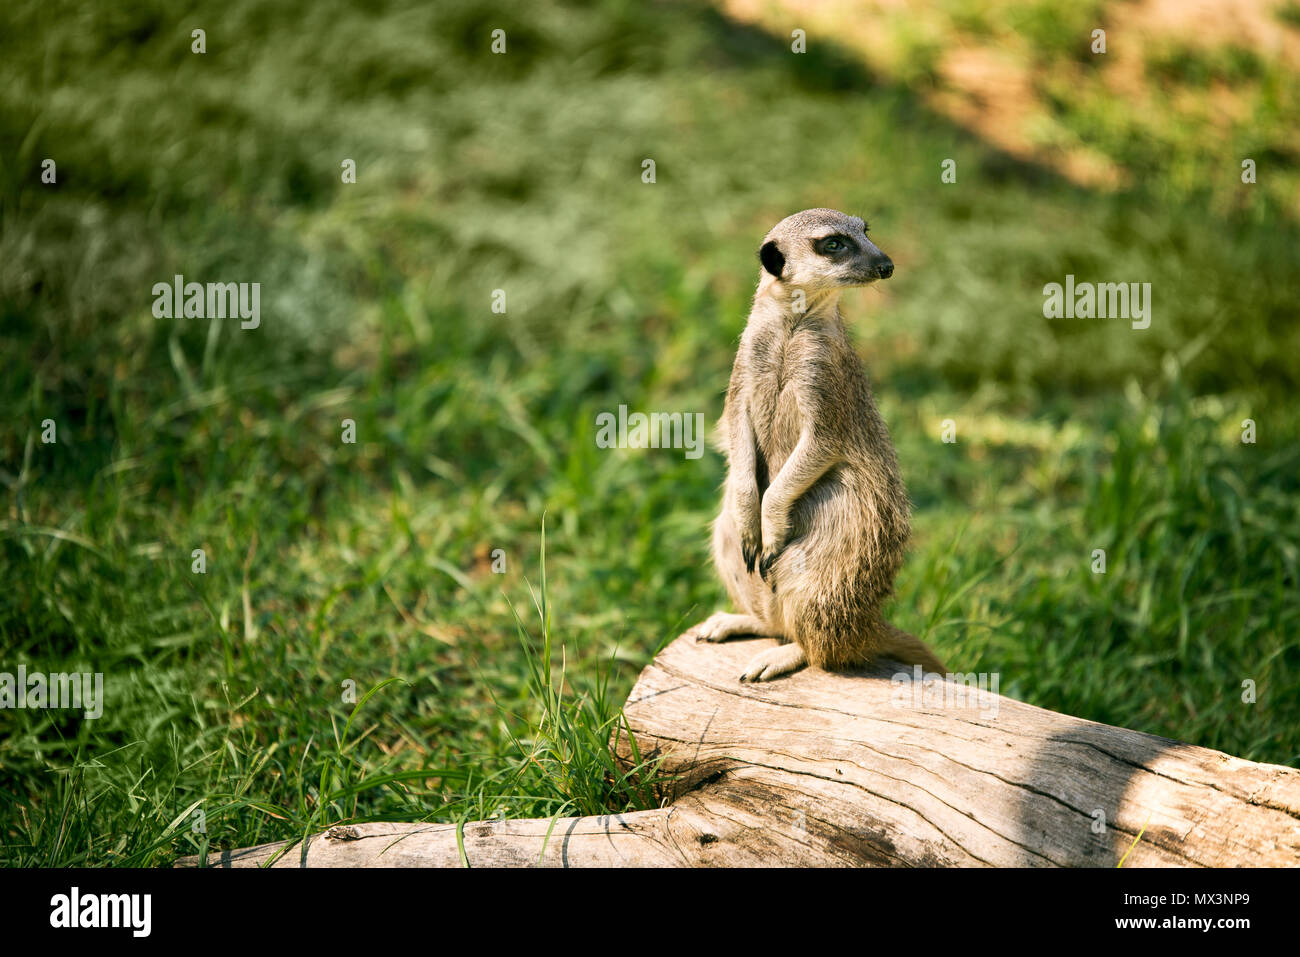 One meerkat on a watch standing in a meadow. Stock Photo